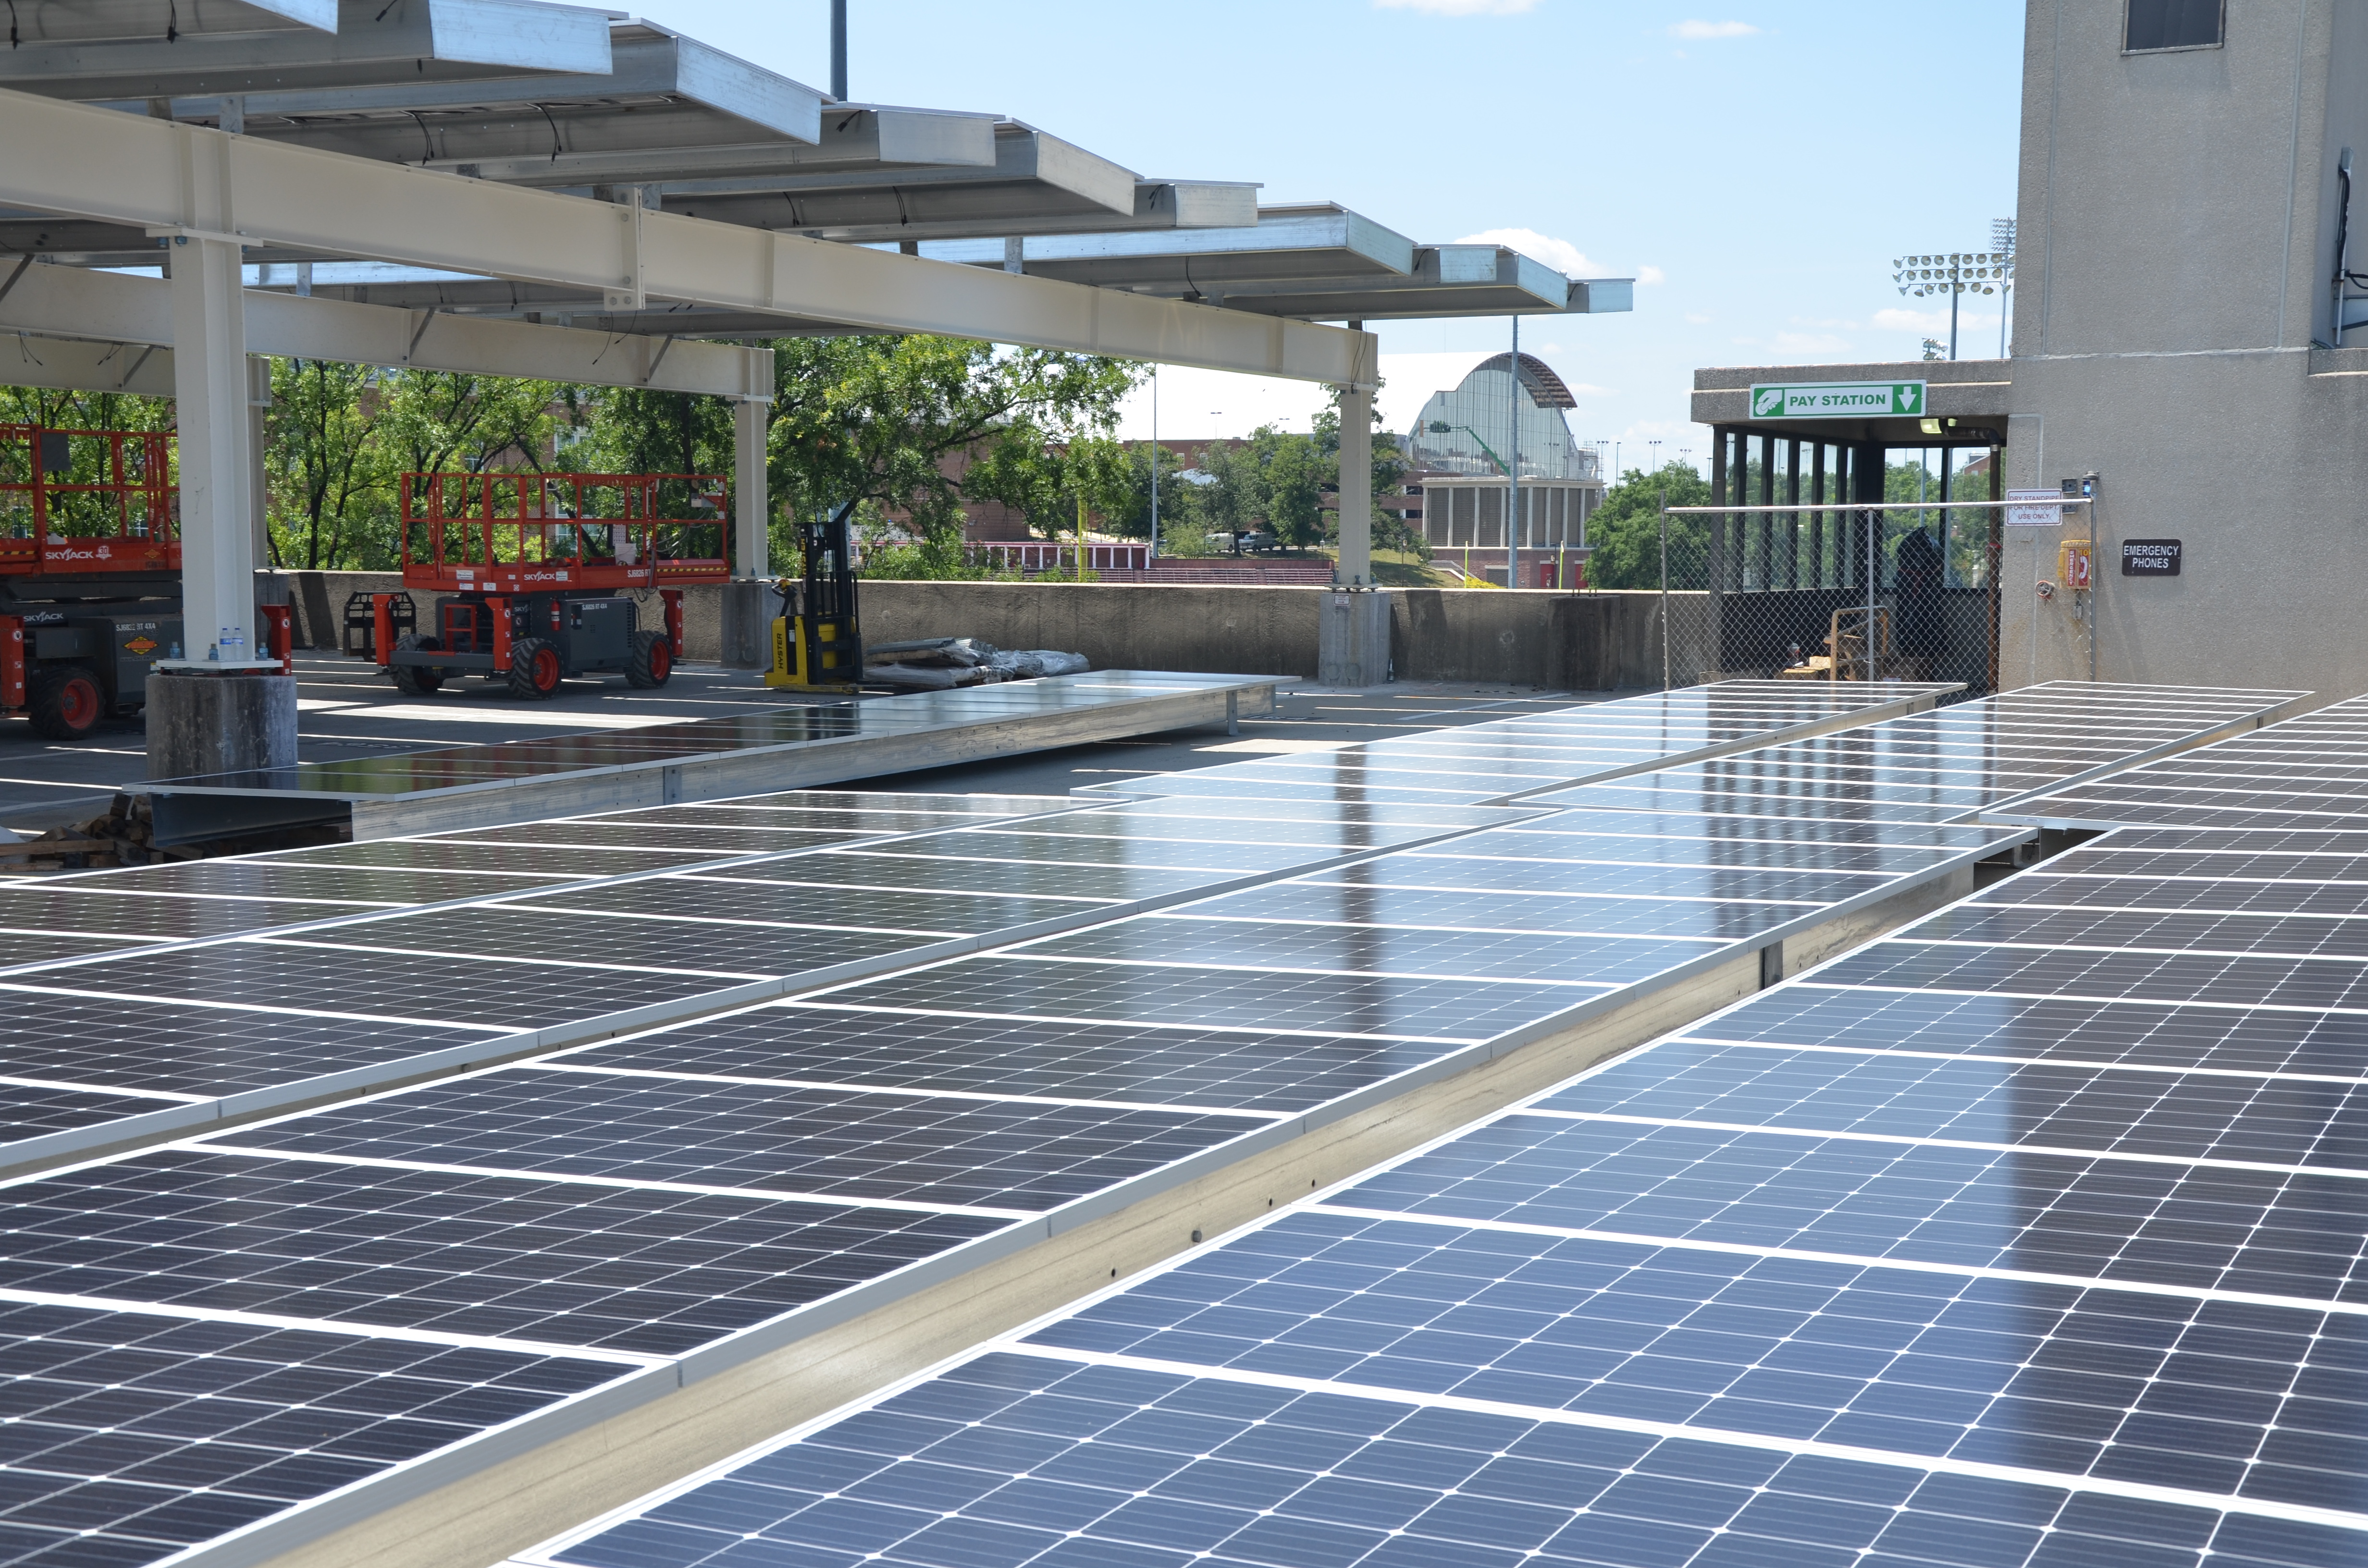 Three New Solar Canopies Are Helping Umd Exceed Its